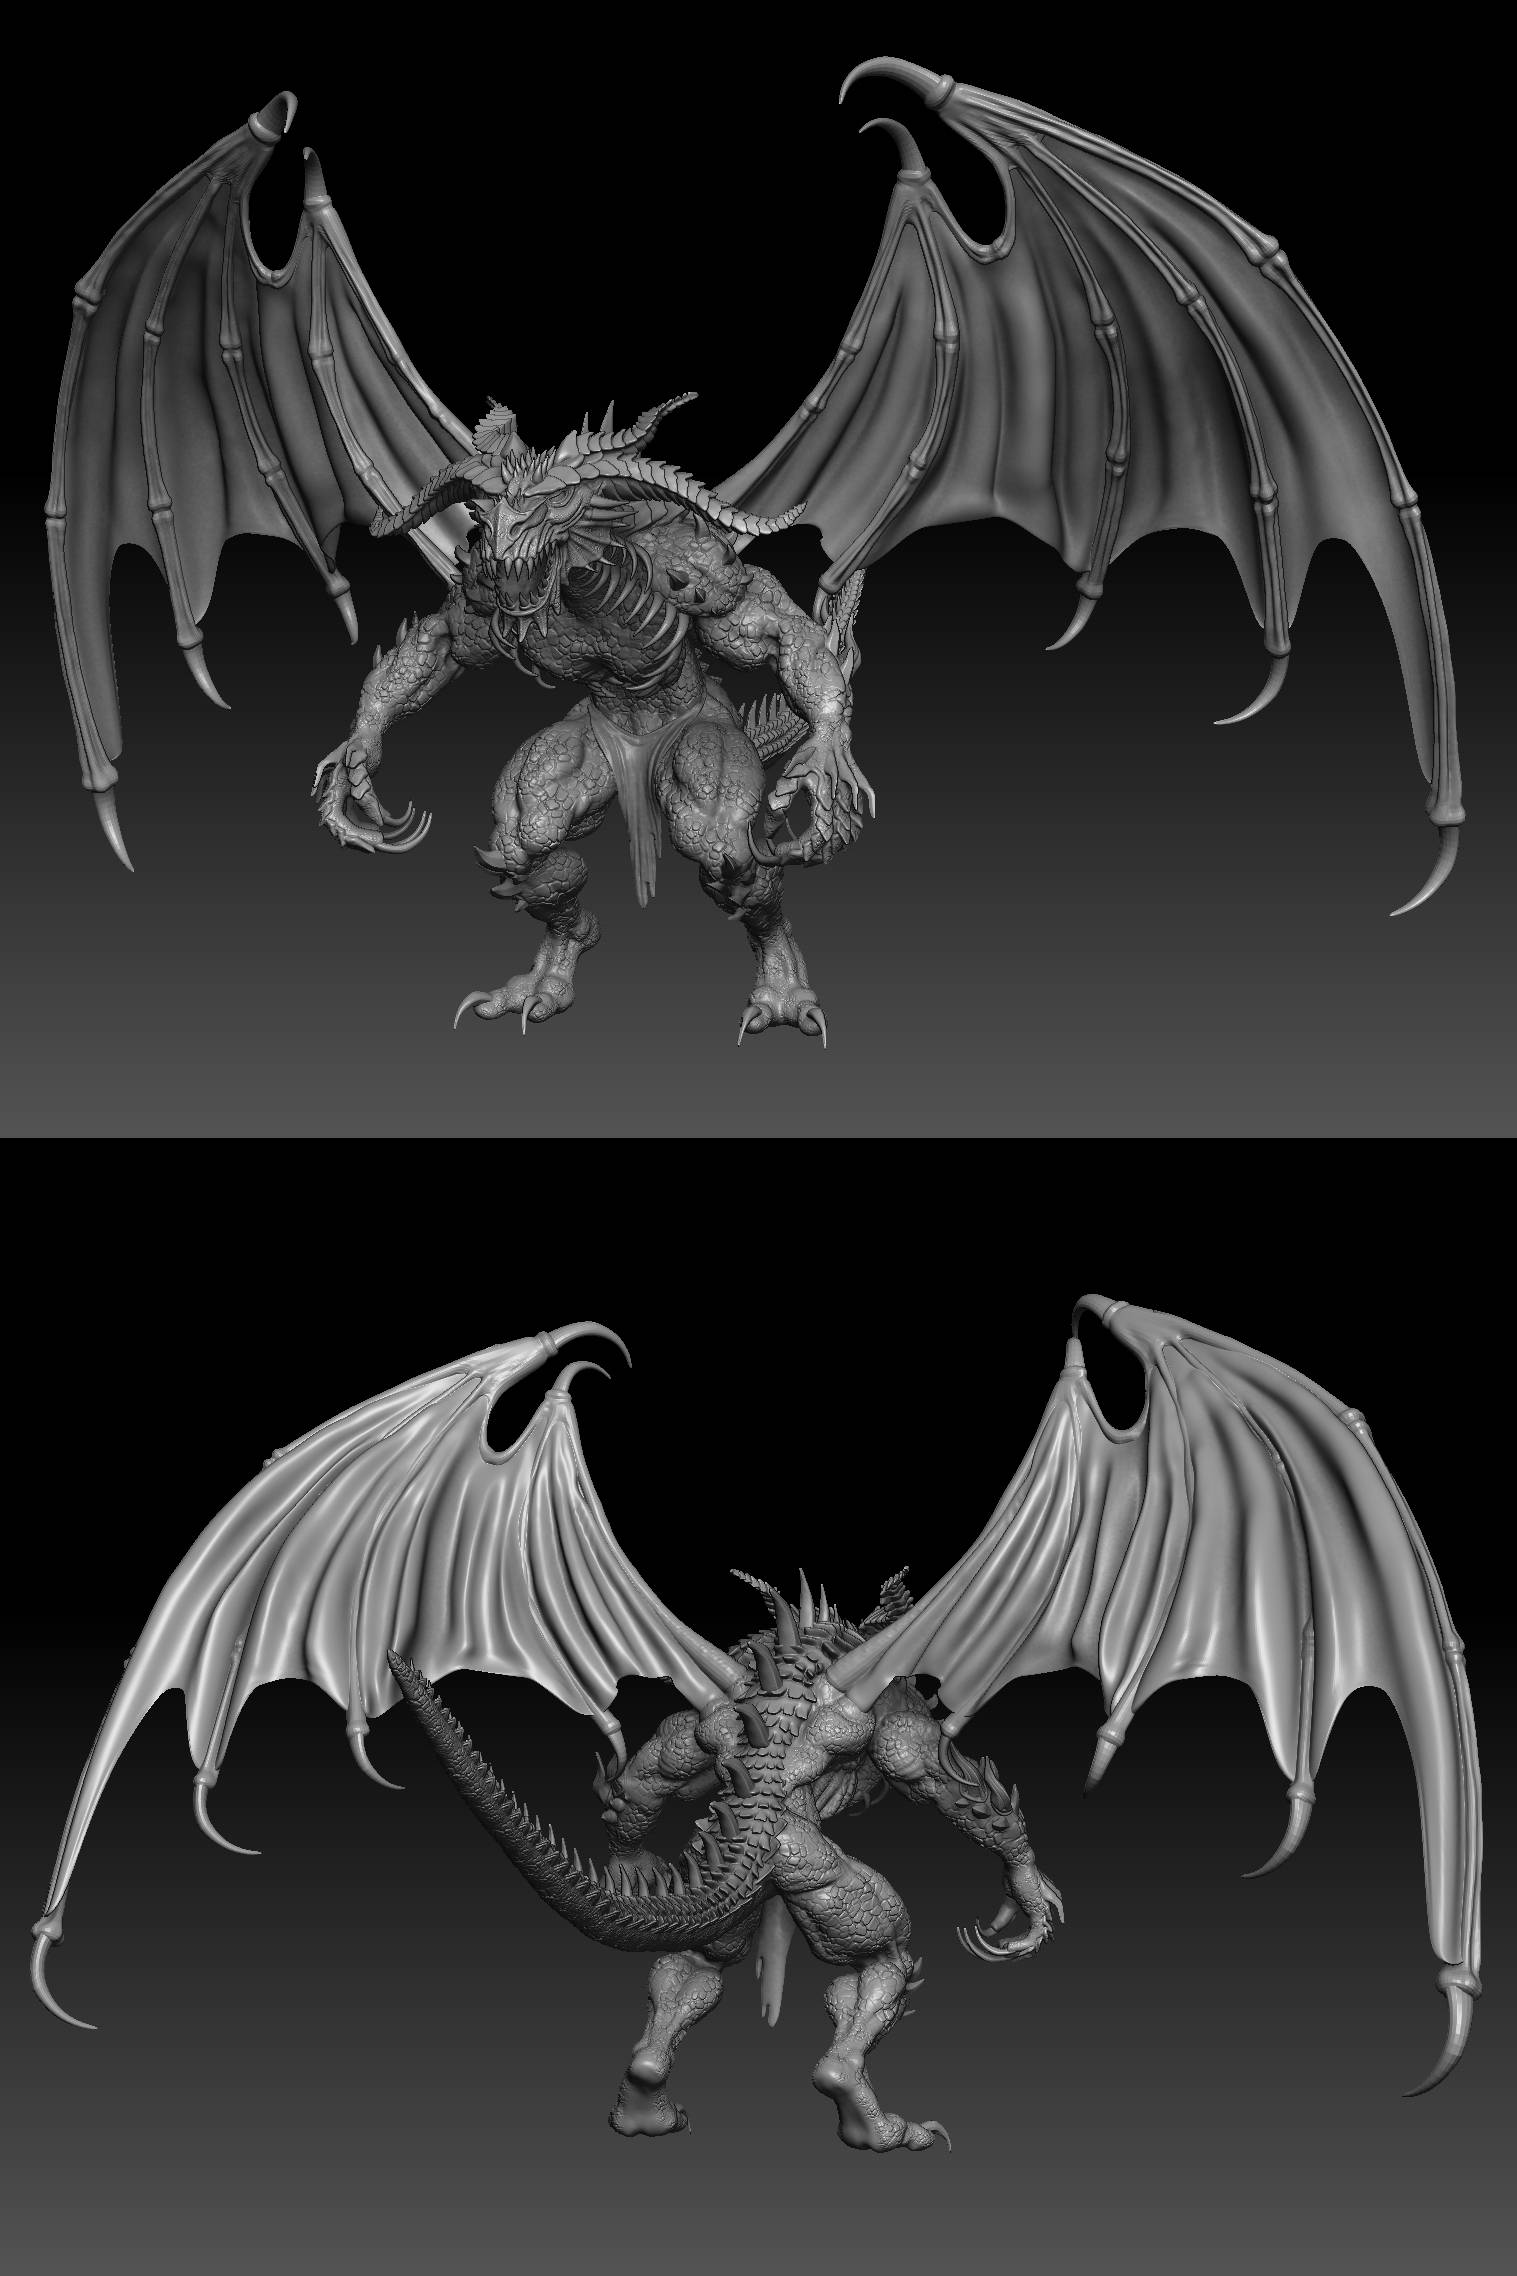 3ds max, Zbrush, Ps